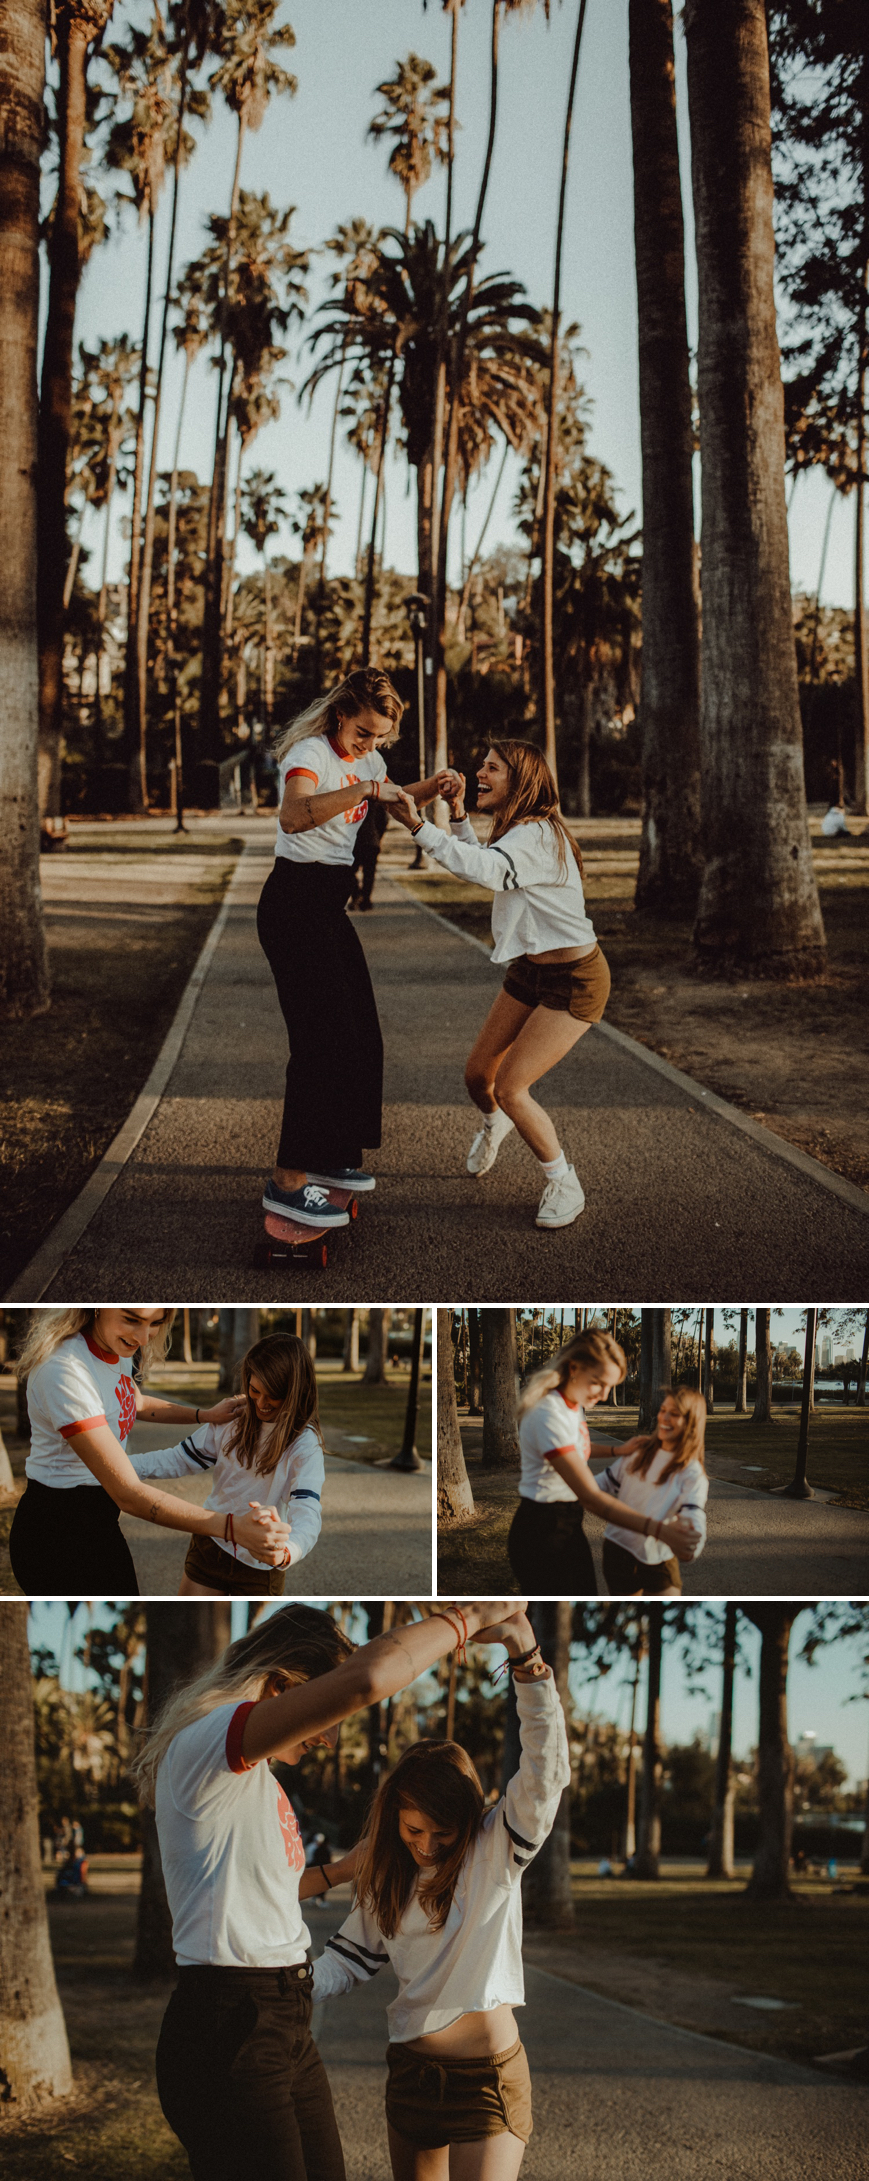 California Wedding Photographers Los Angeles Engagement Photographer Atlanta Elopement Photography_ Skateboard Photography Sierra Prescott  __ Atalie Ann Photo _1013.jpg